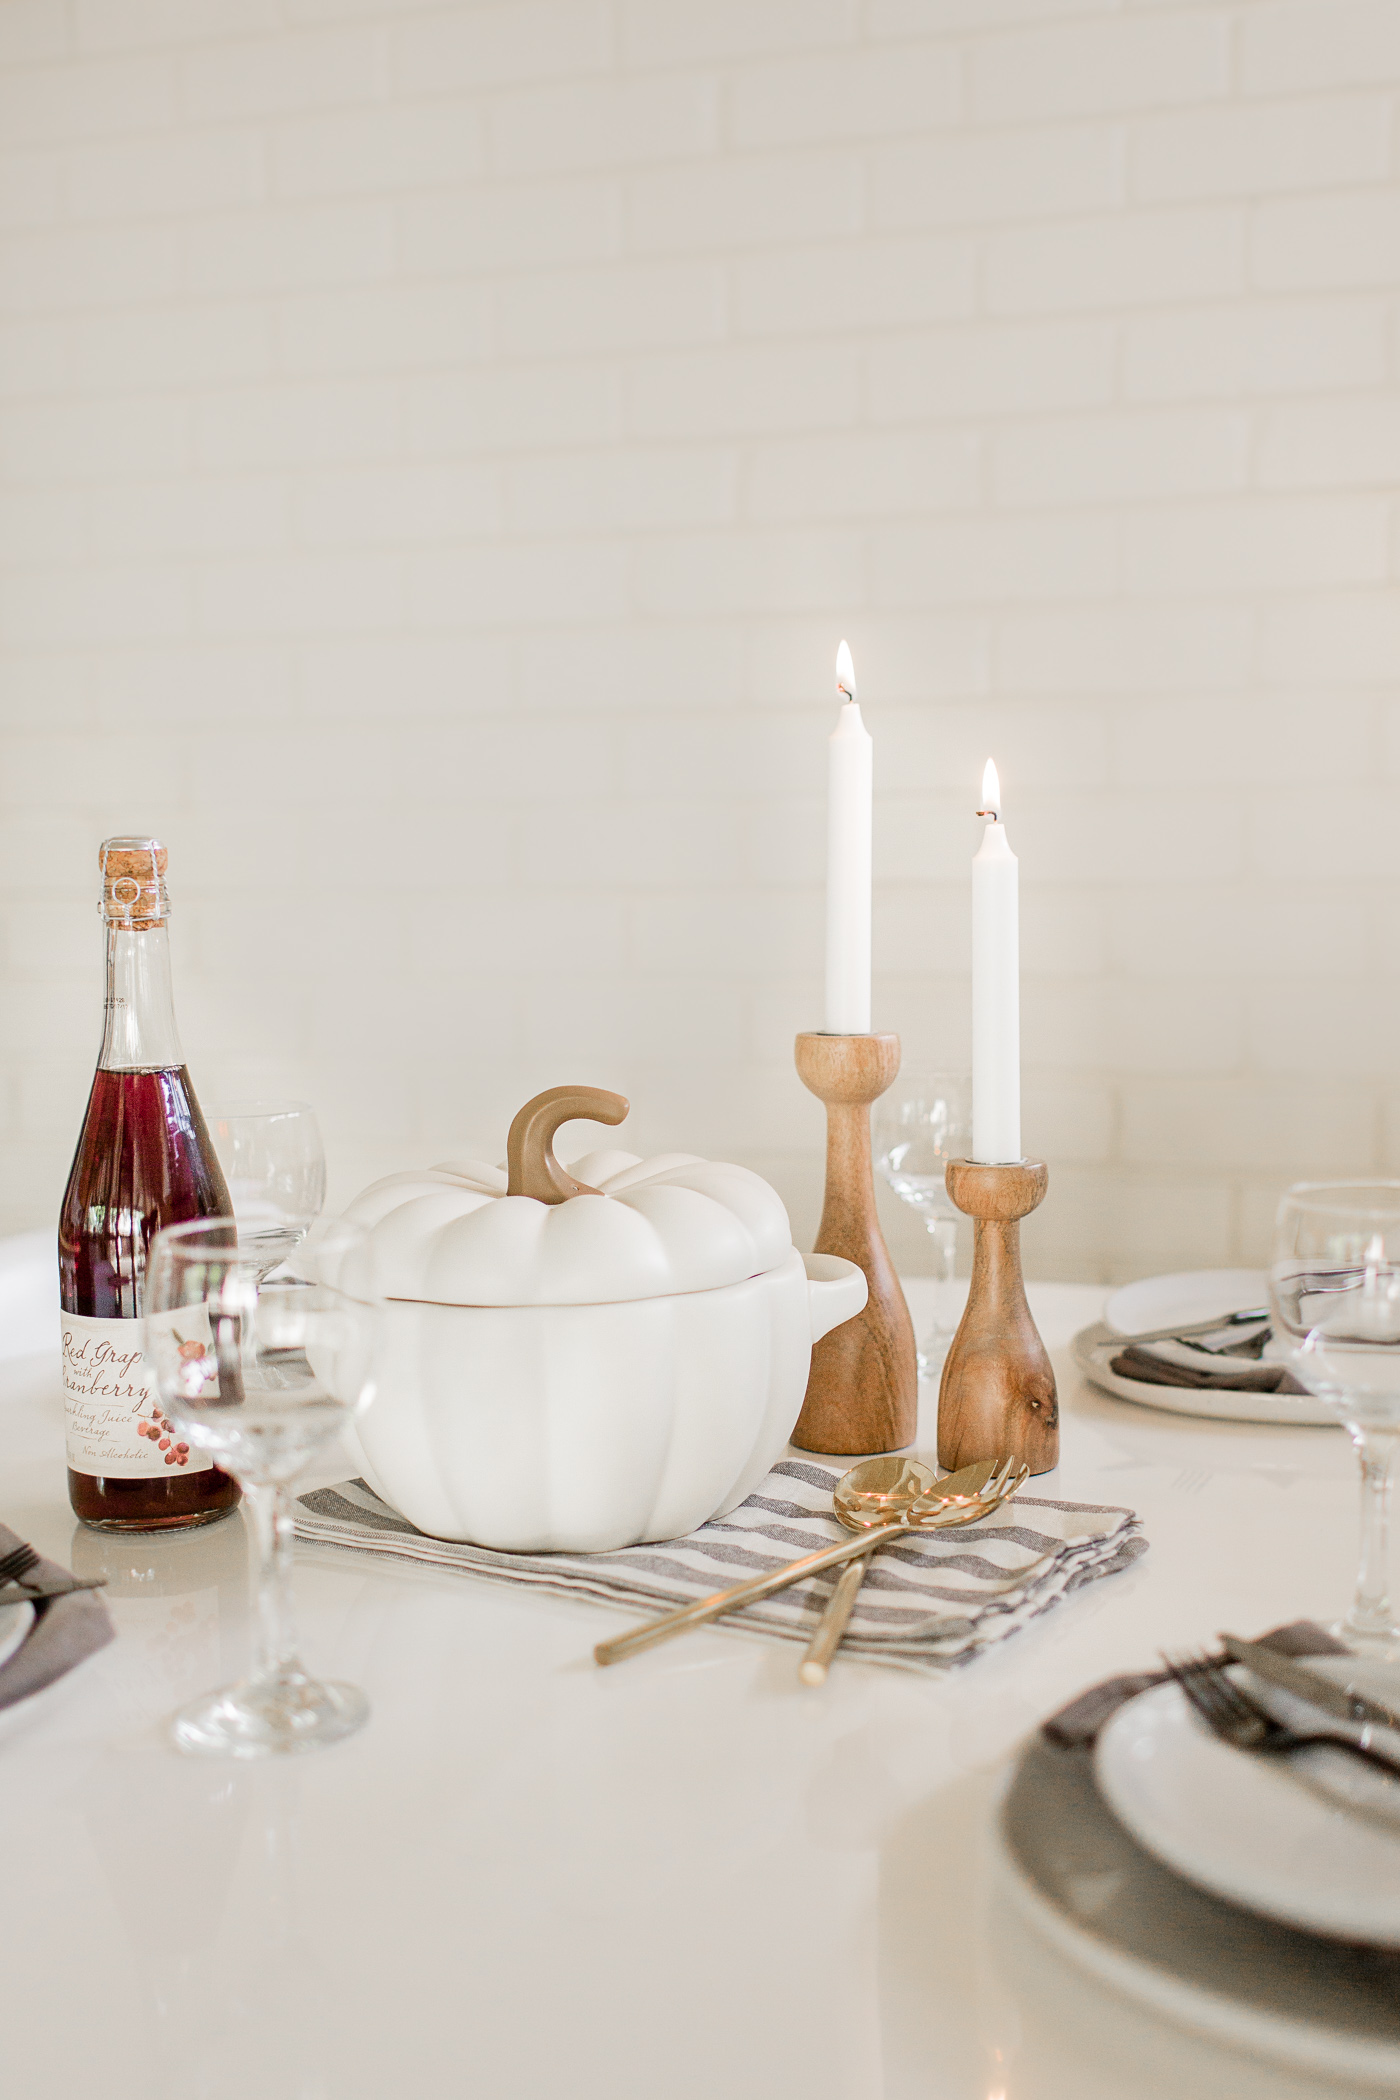 How to get your home ready for entertaining